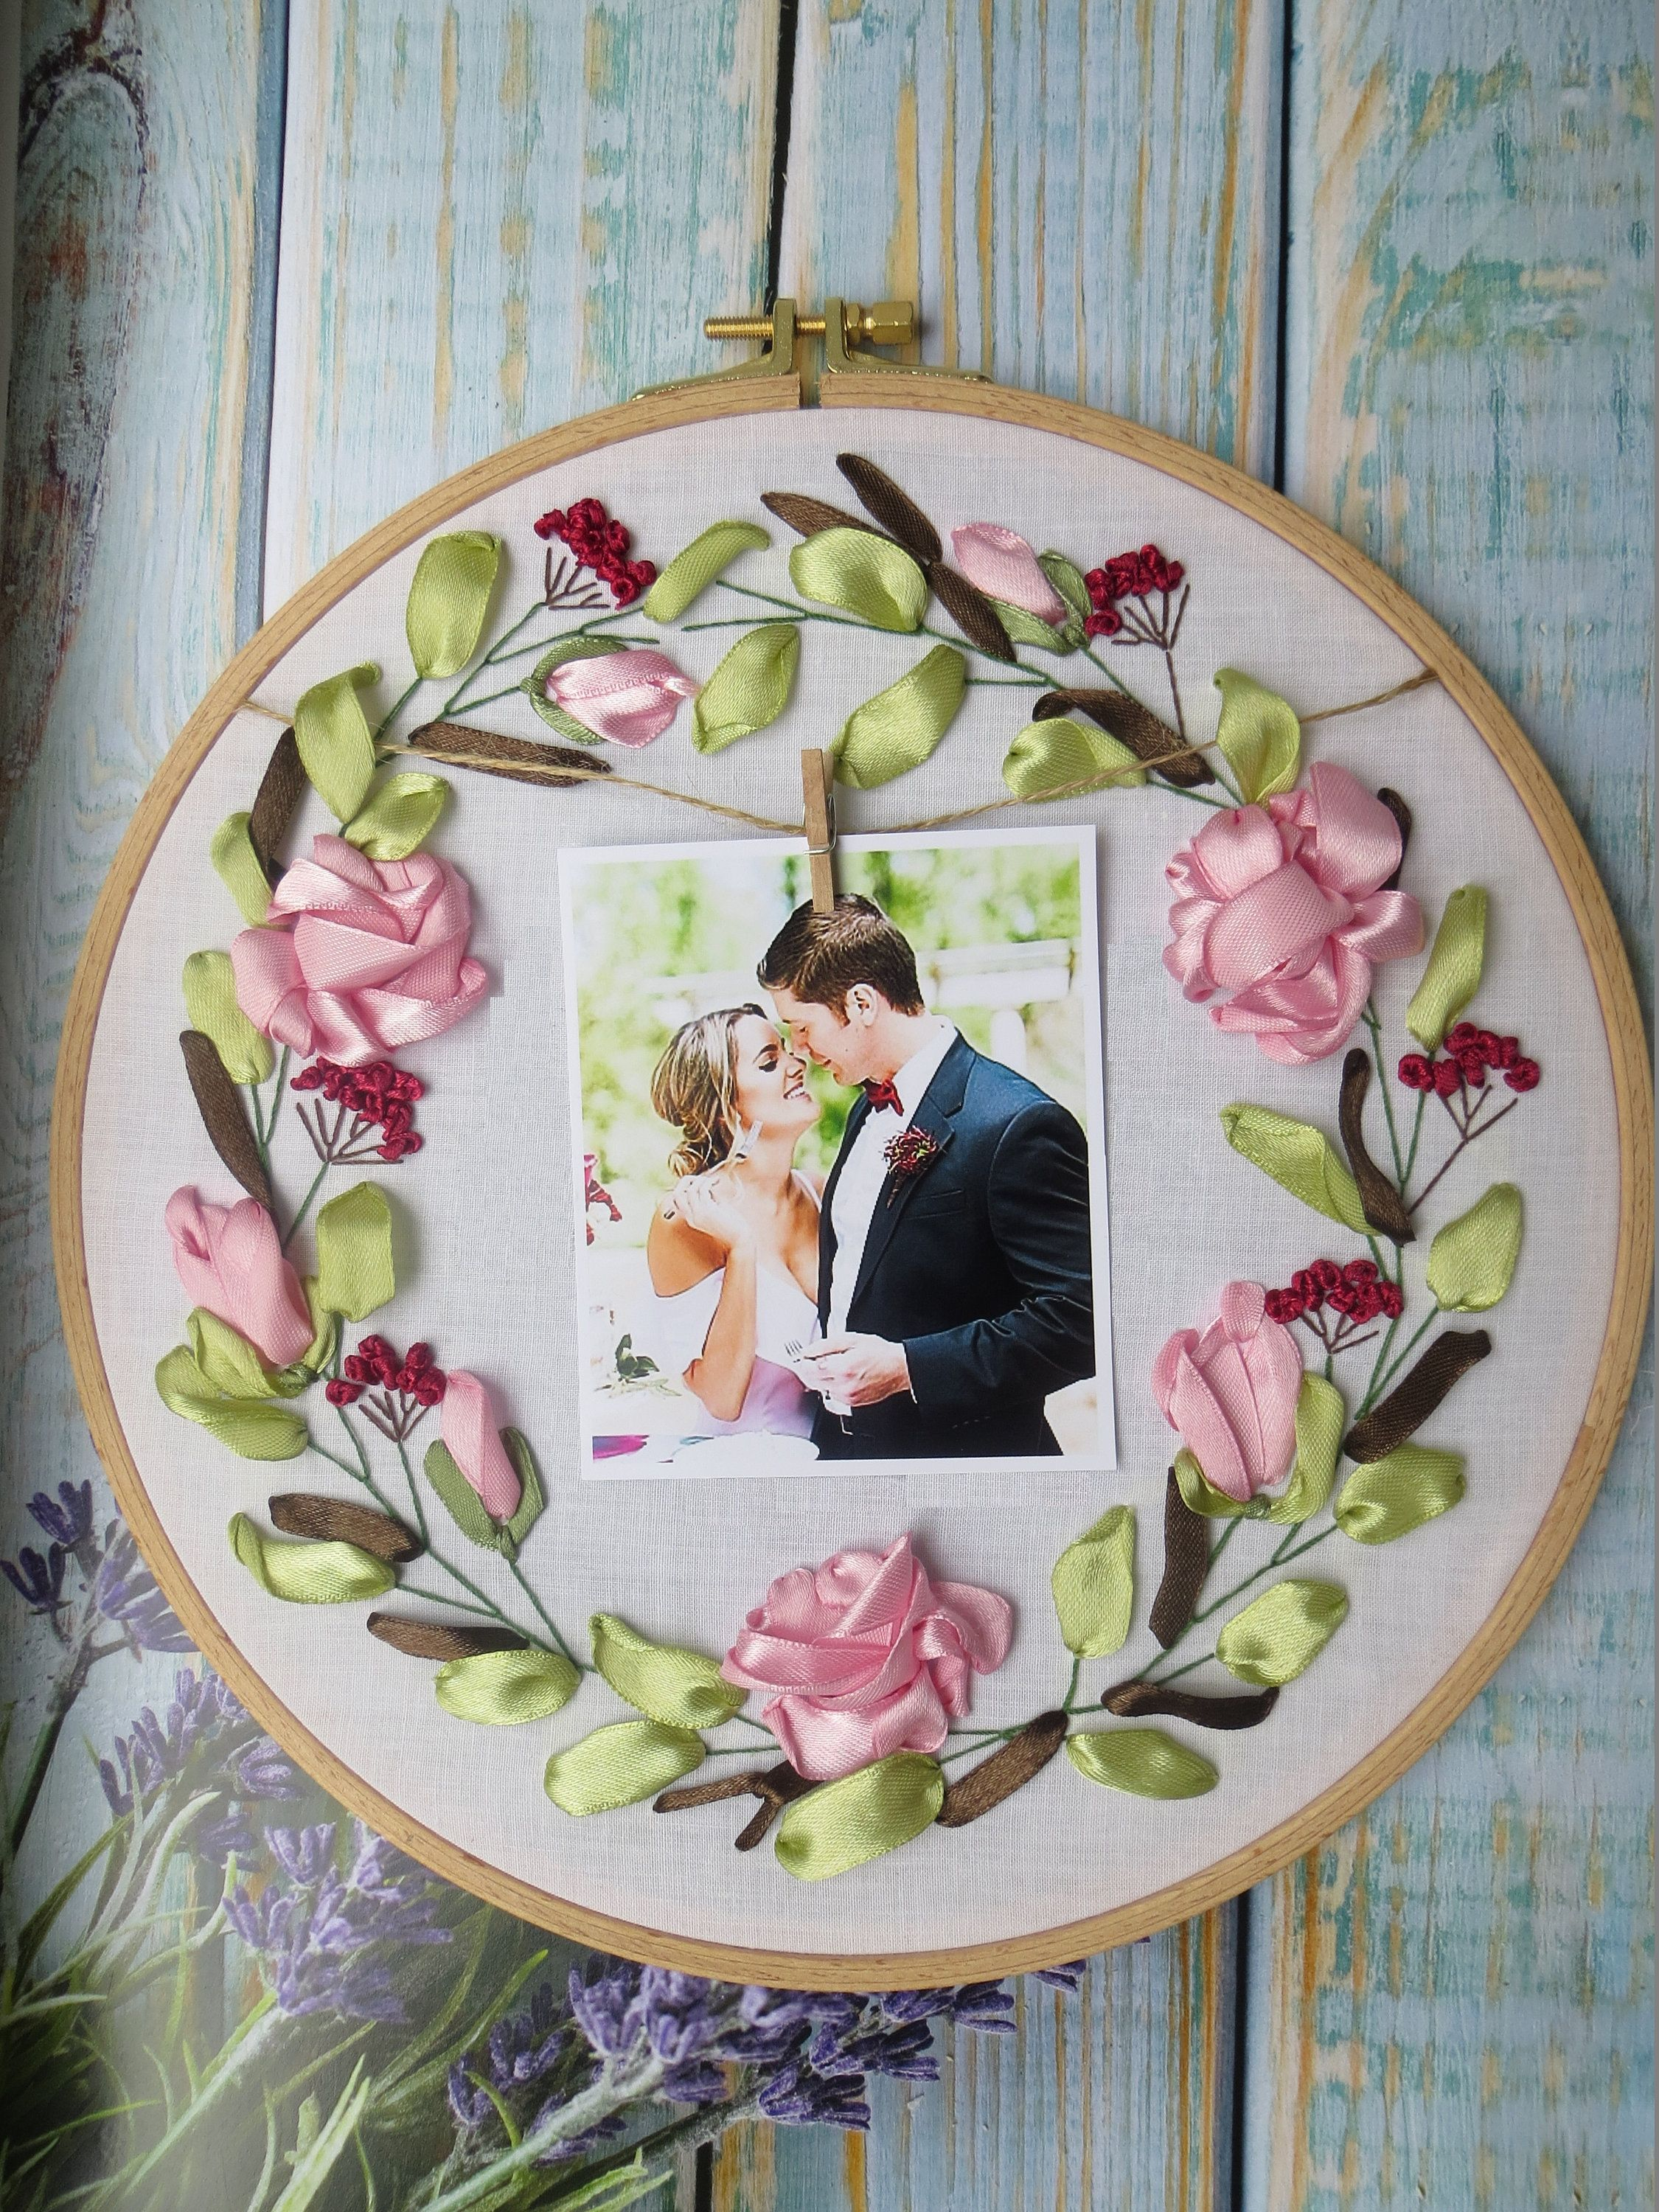 4th 12th wedding anniversary gift for men wife linen